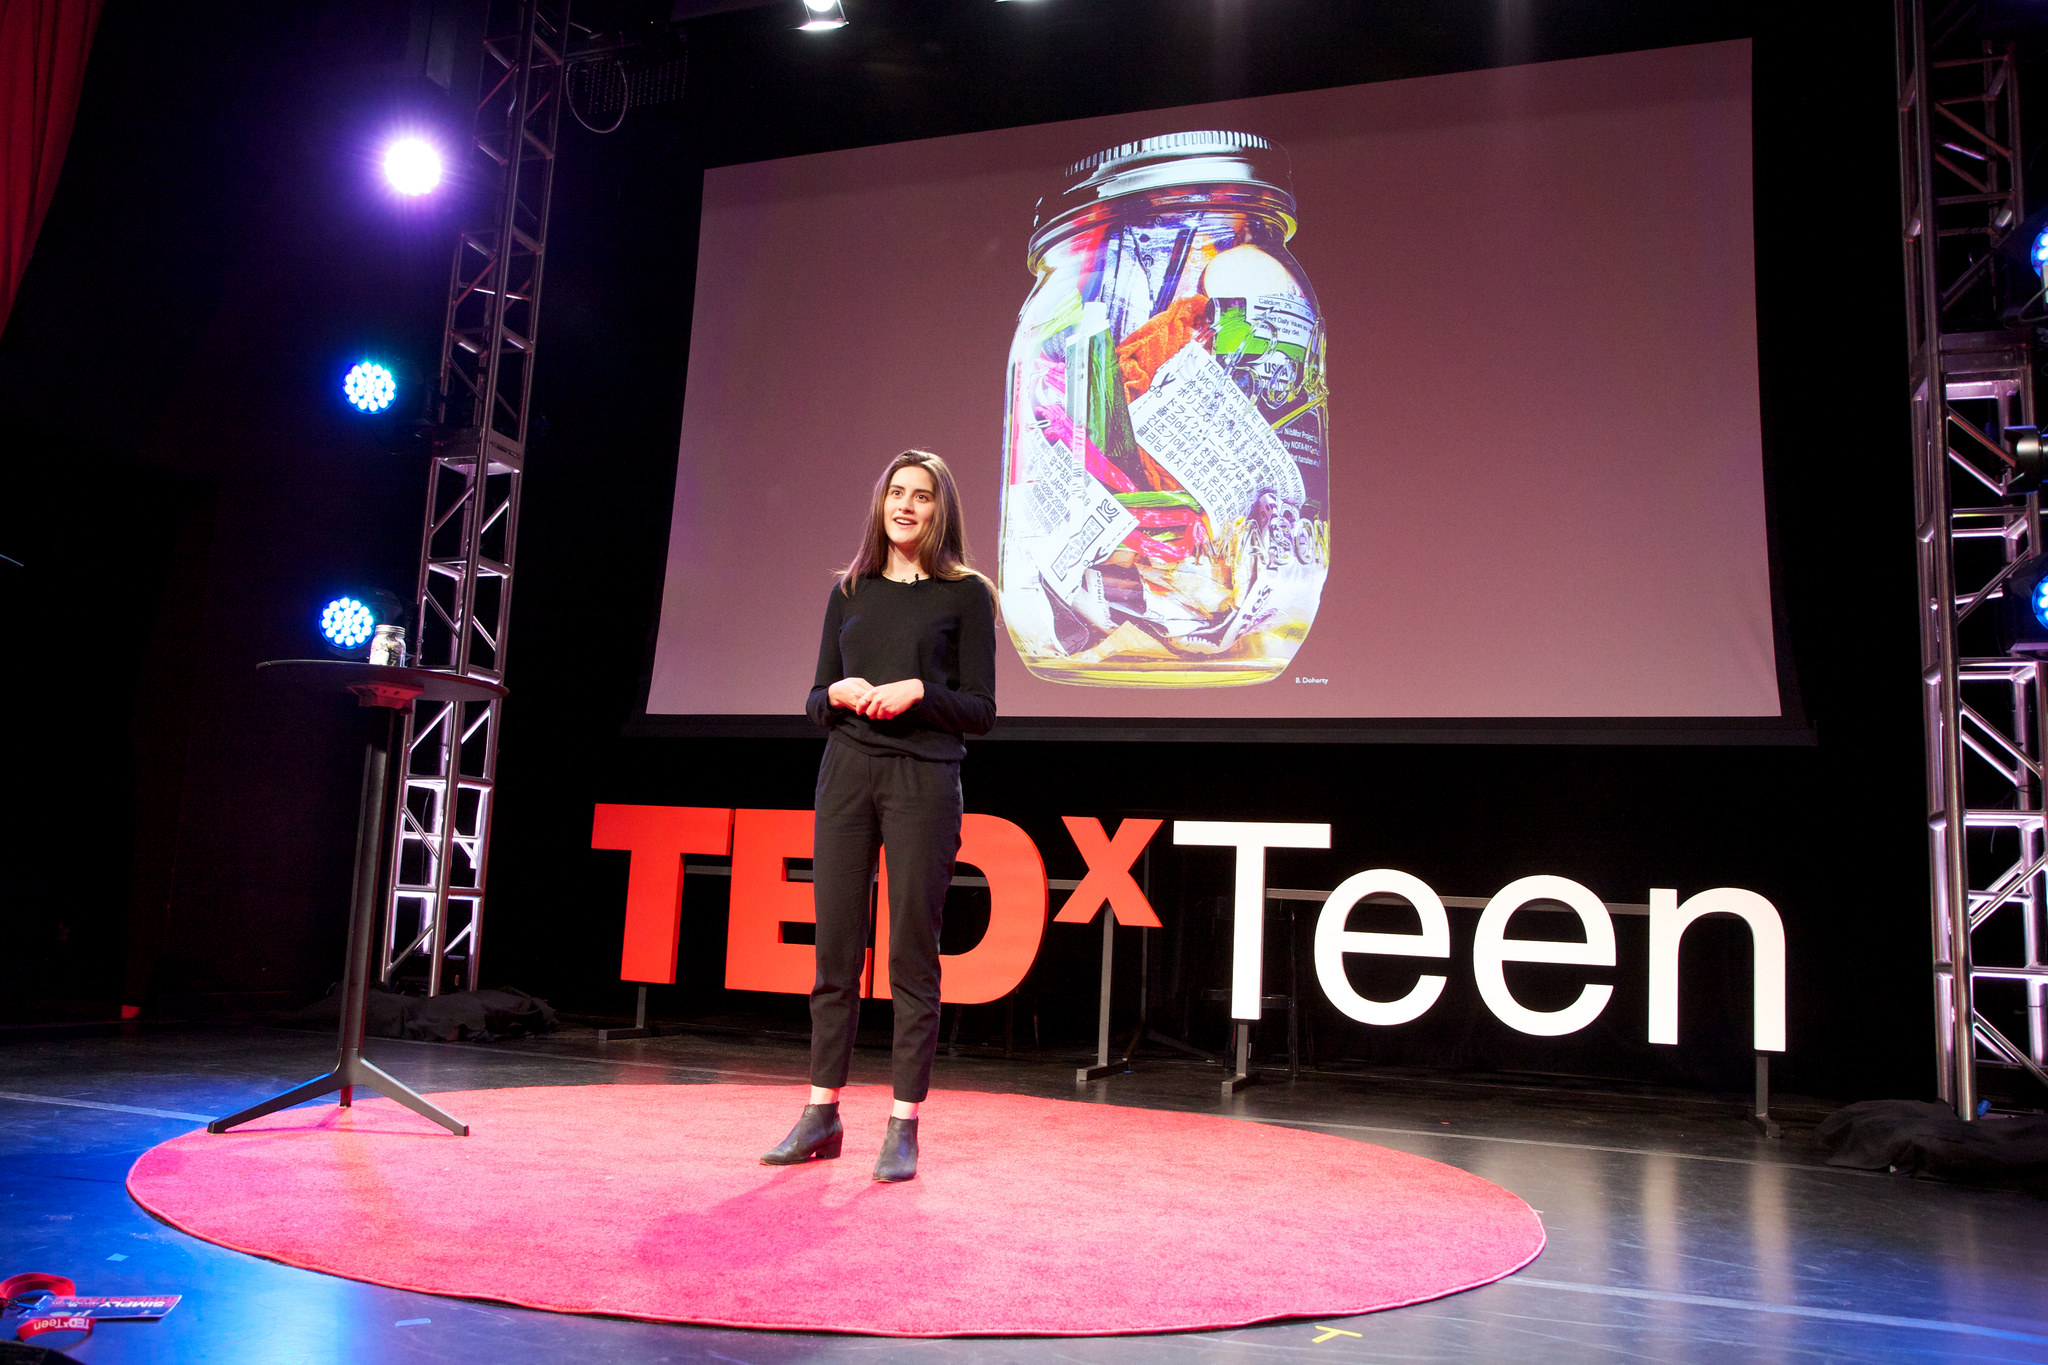 This jar contains all of the trash Lauren Singer has created for the past three years. Photo: Courtesy of TEDxTeen